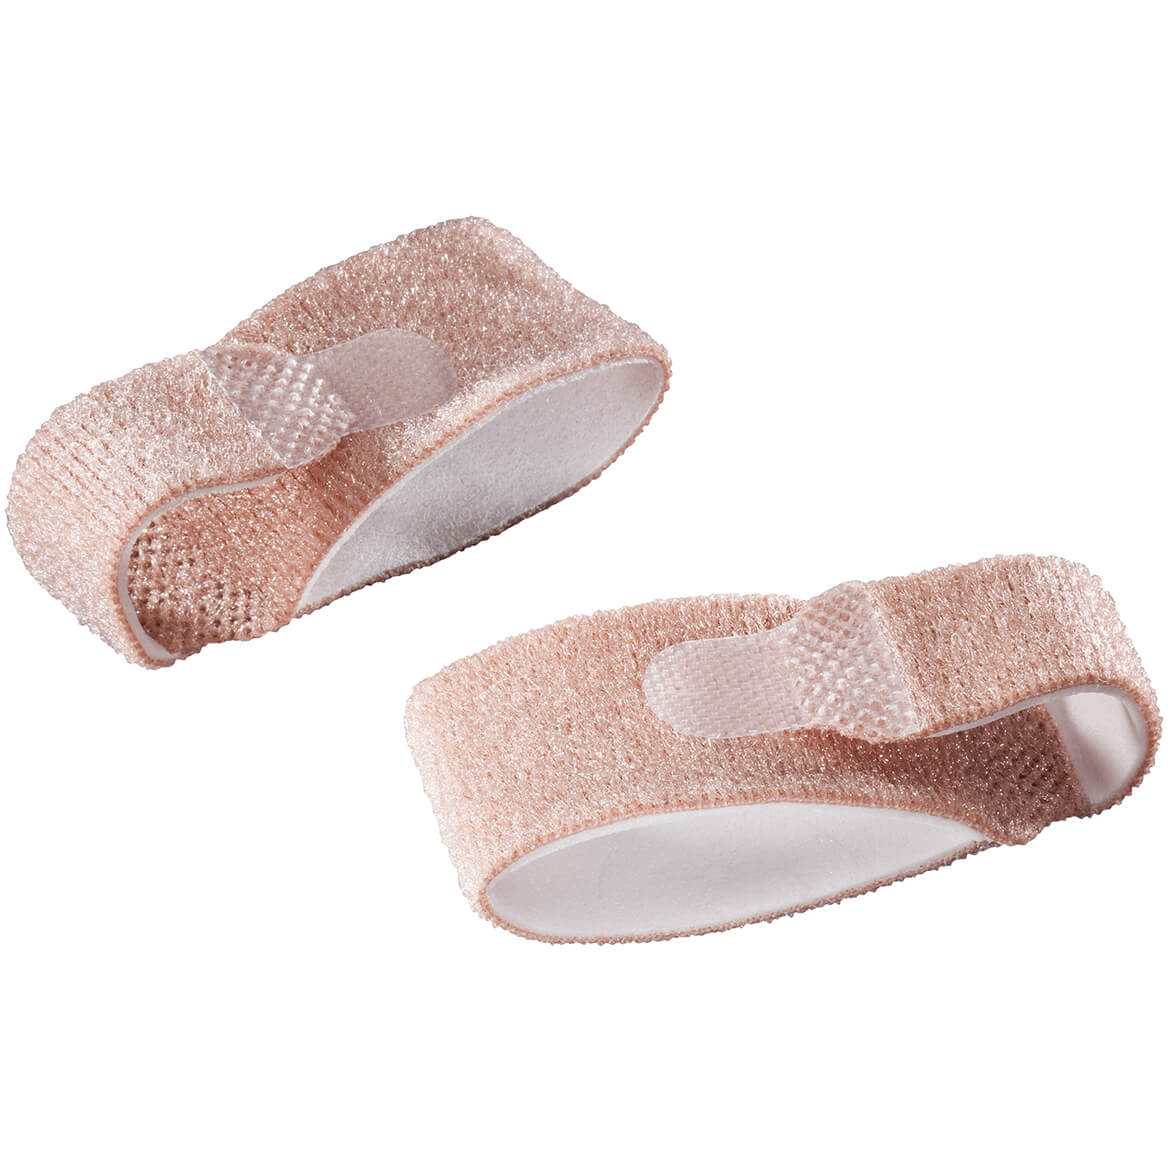 Silver Steps™ Toe Straightening Wraps, Set of 2-347965